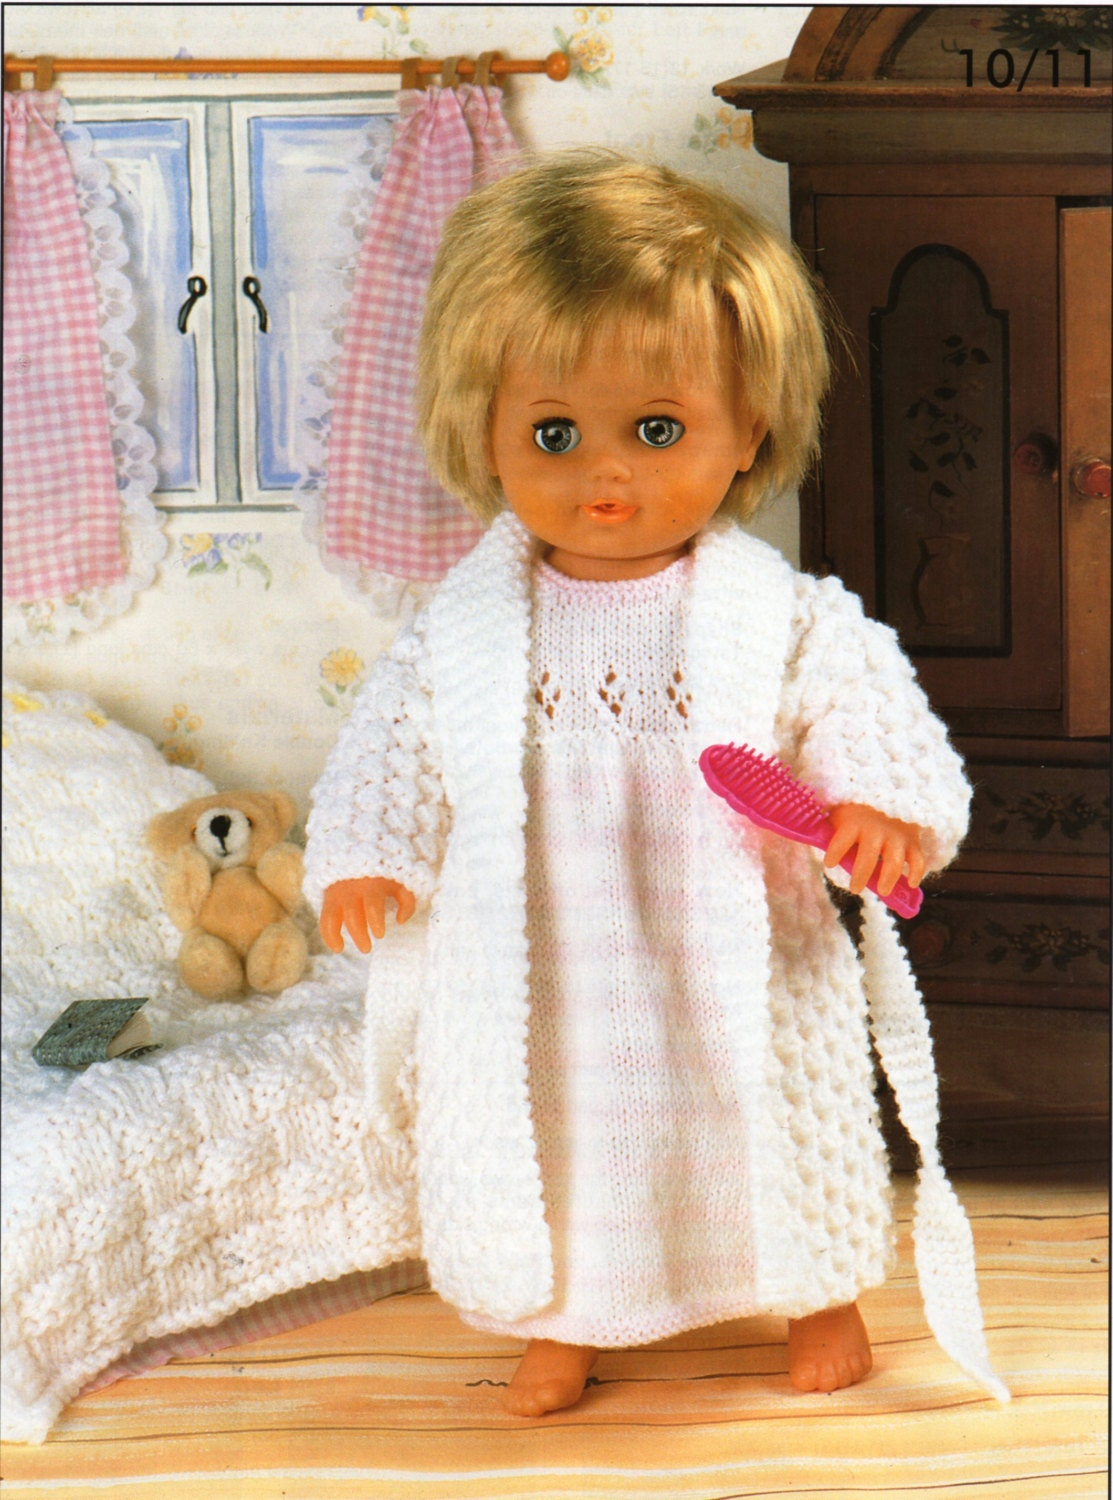 Knitting Pattern Dressing Gown : Baby dolls clothes knitting patterns for dolls nightdress